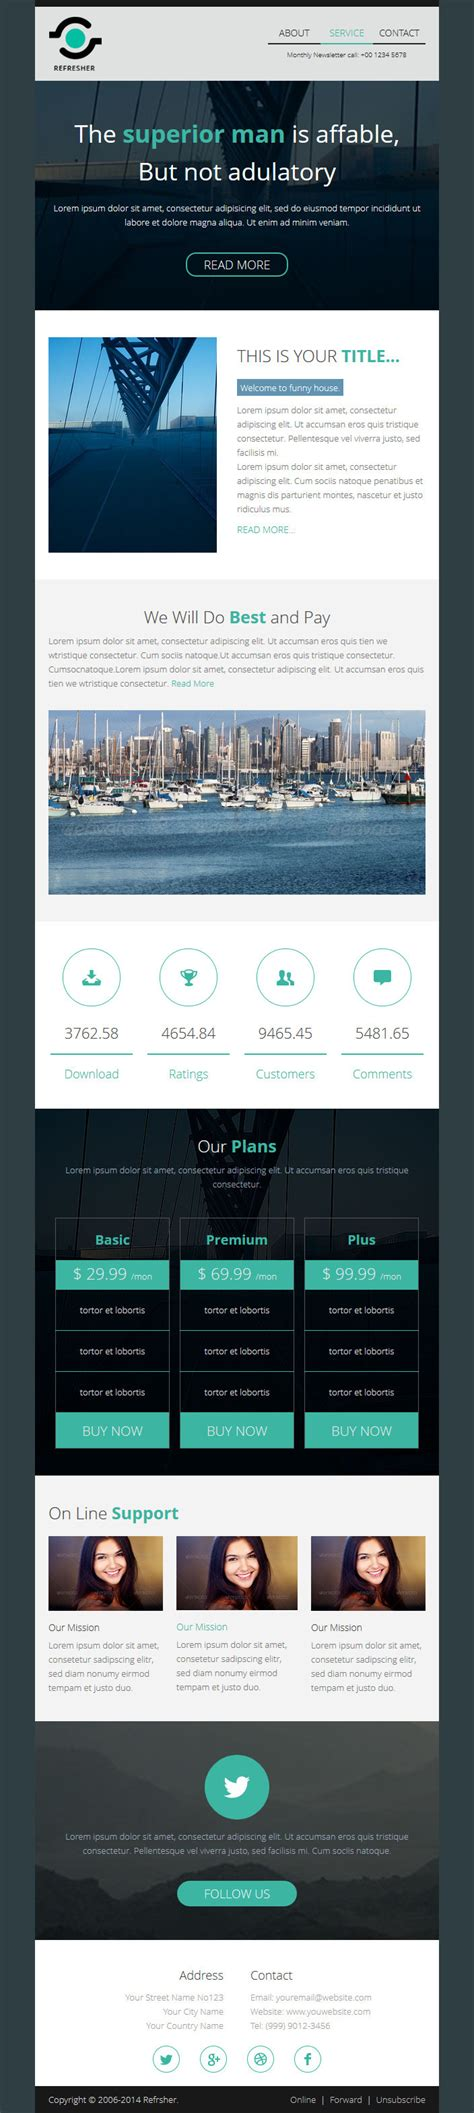 refresher responsive email template with builder by